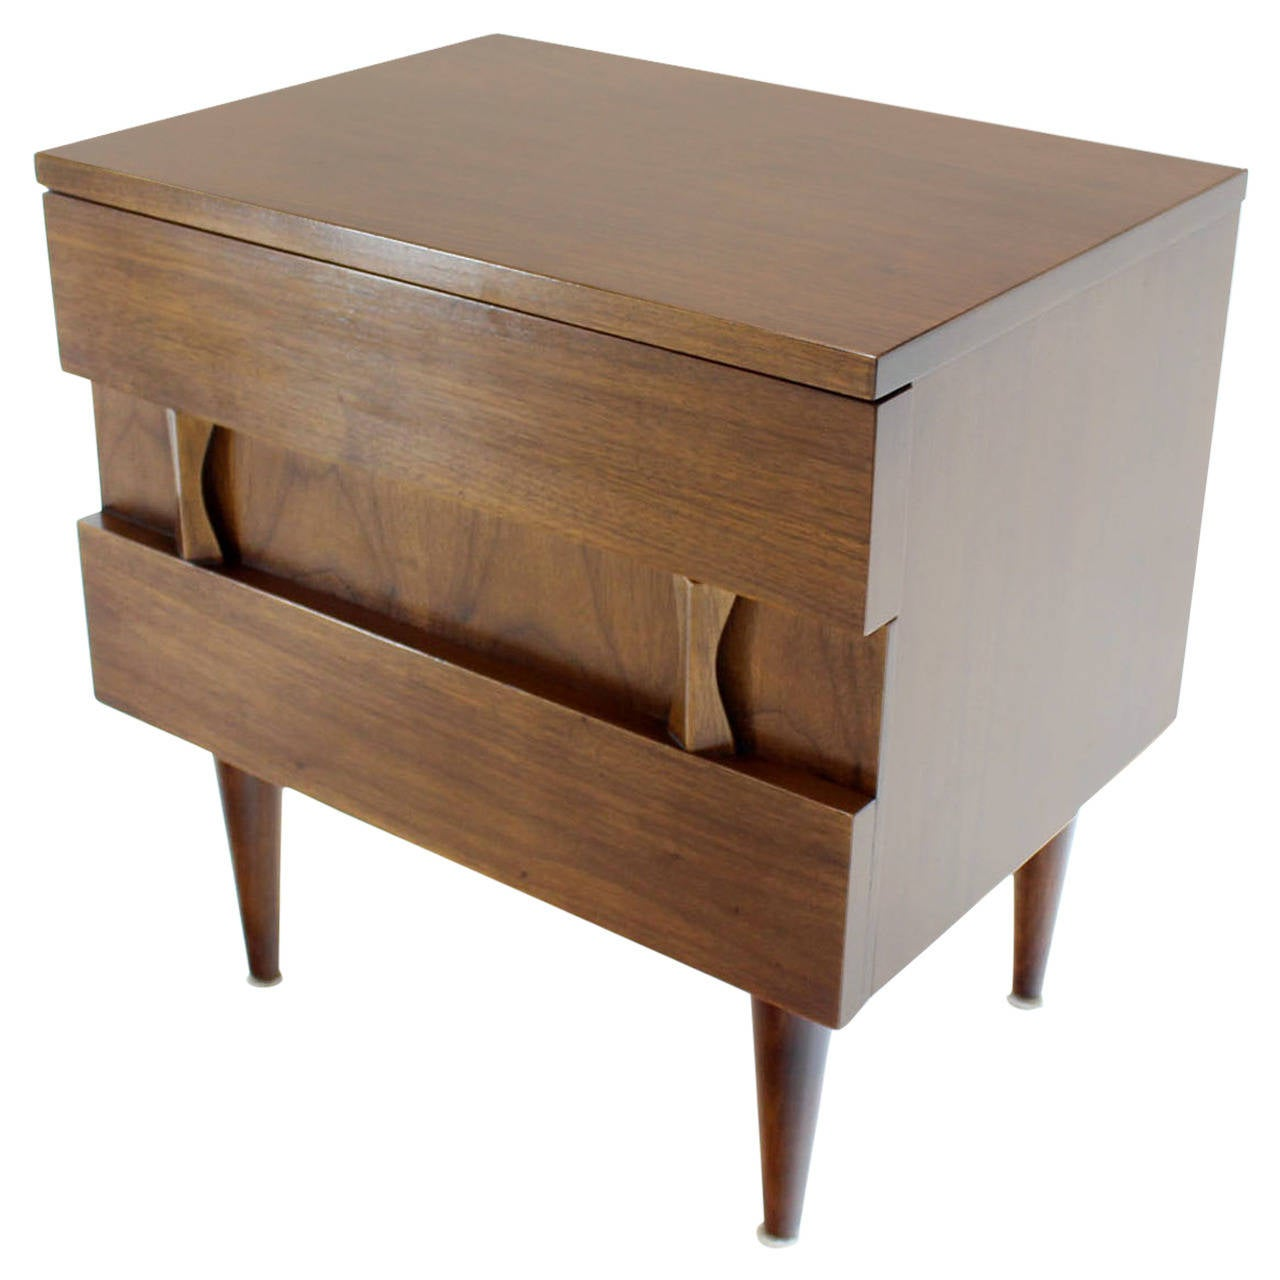 danish midcentury modern walnut end table or night stand for sale  - danish midcentury modern walnut end table or night stand